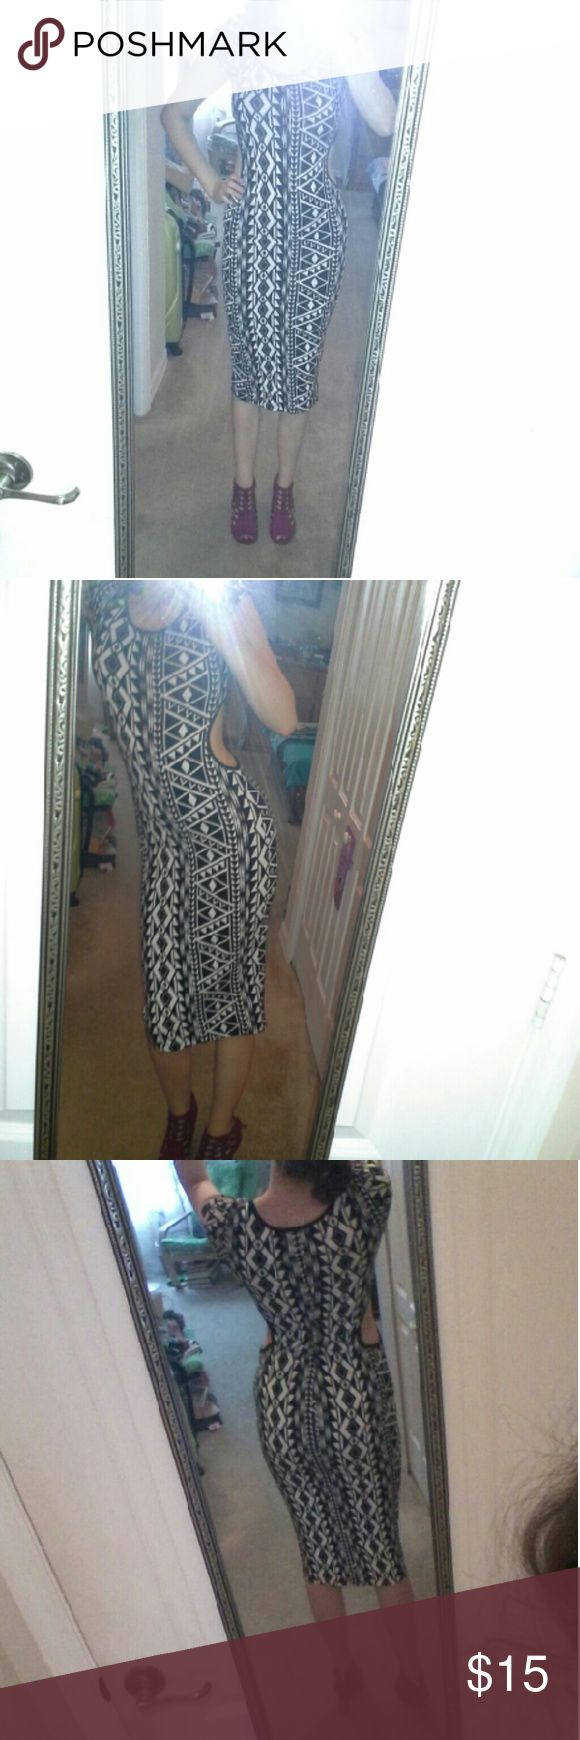 BW Aztec Cutout Midi Dress Only worn once, perfect for a night out! Charlotte Russe Dresses Midi